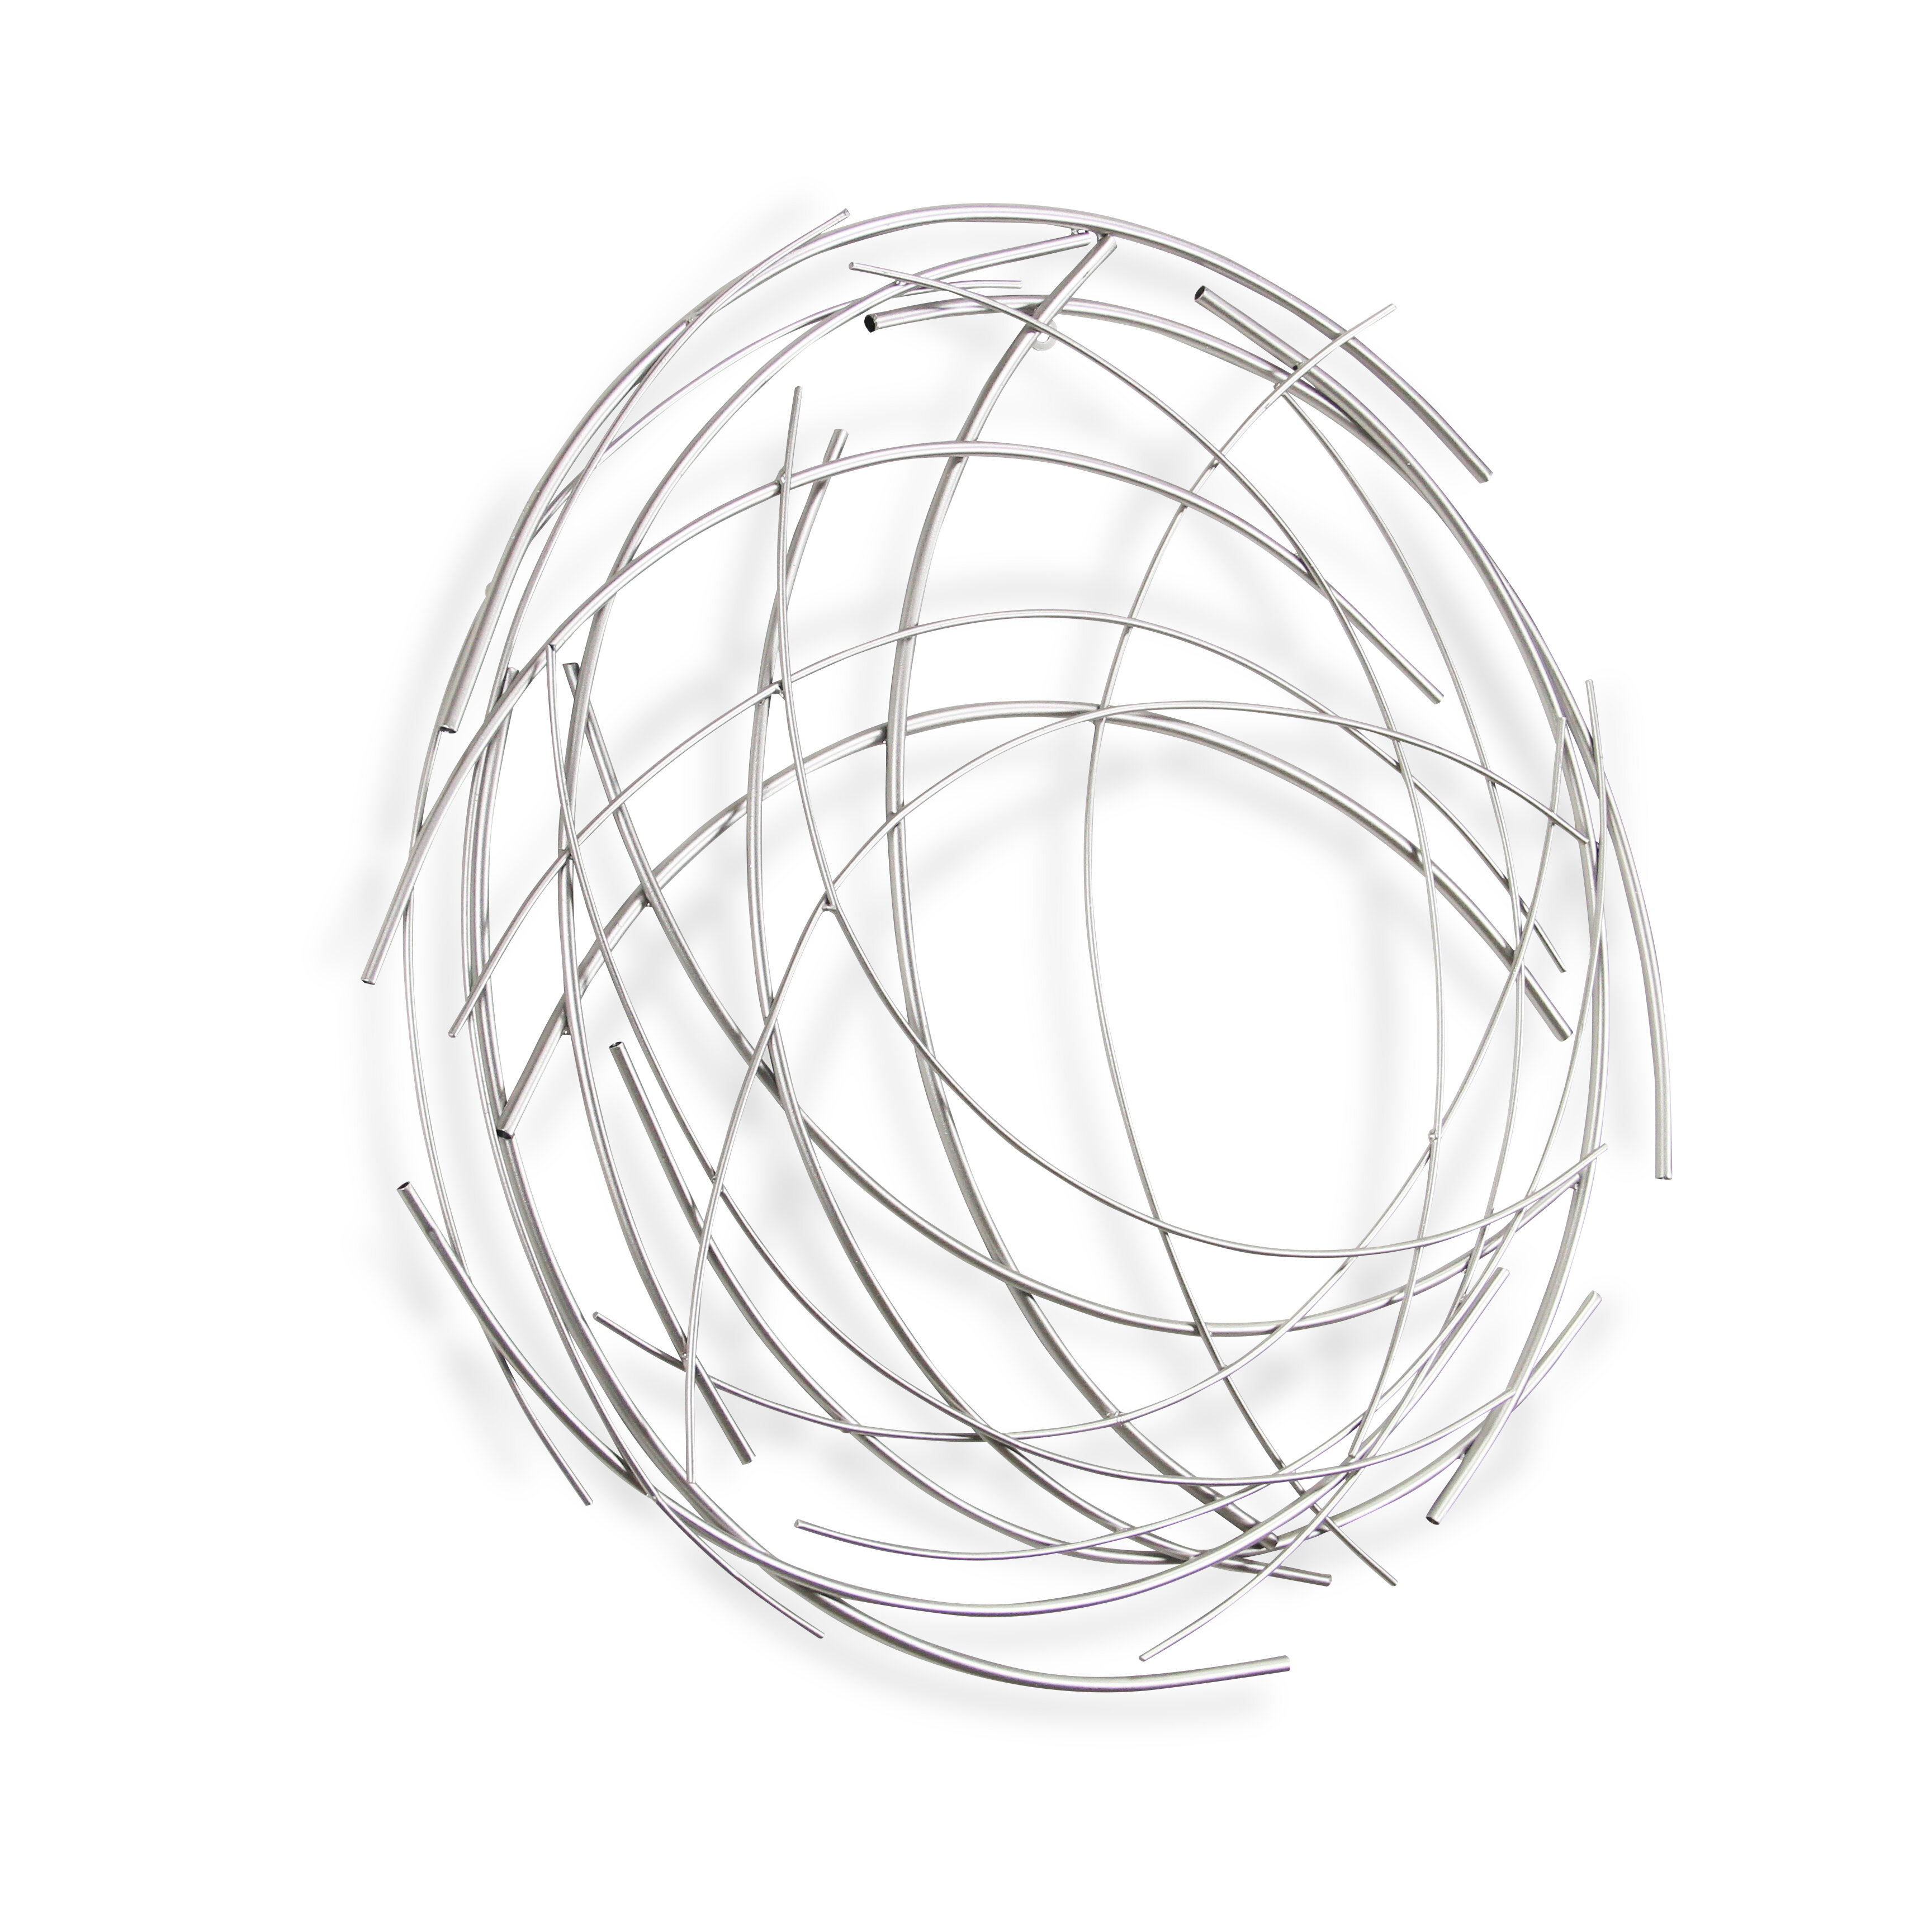 Preferred Contemporary Abstract Round Wall Decor Throughout Orren Ellis Contemporary Abstract Round Wall Décor & Reviews (Gallery 1 of 20)